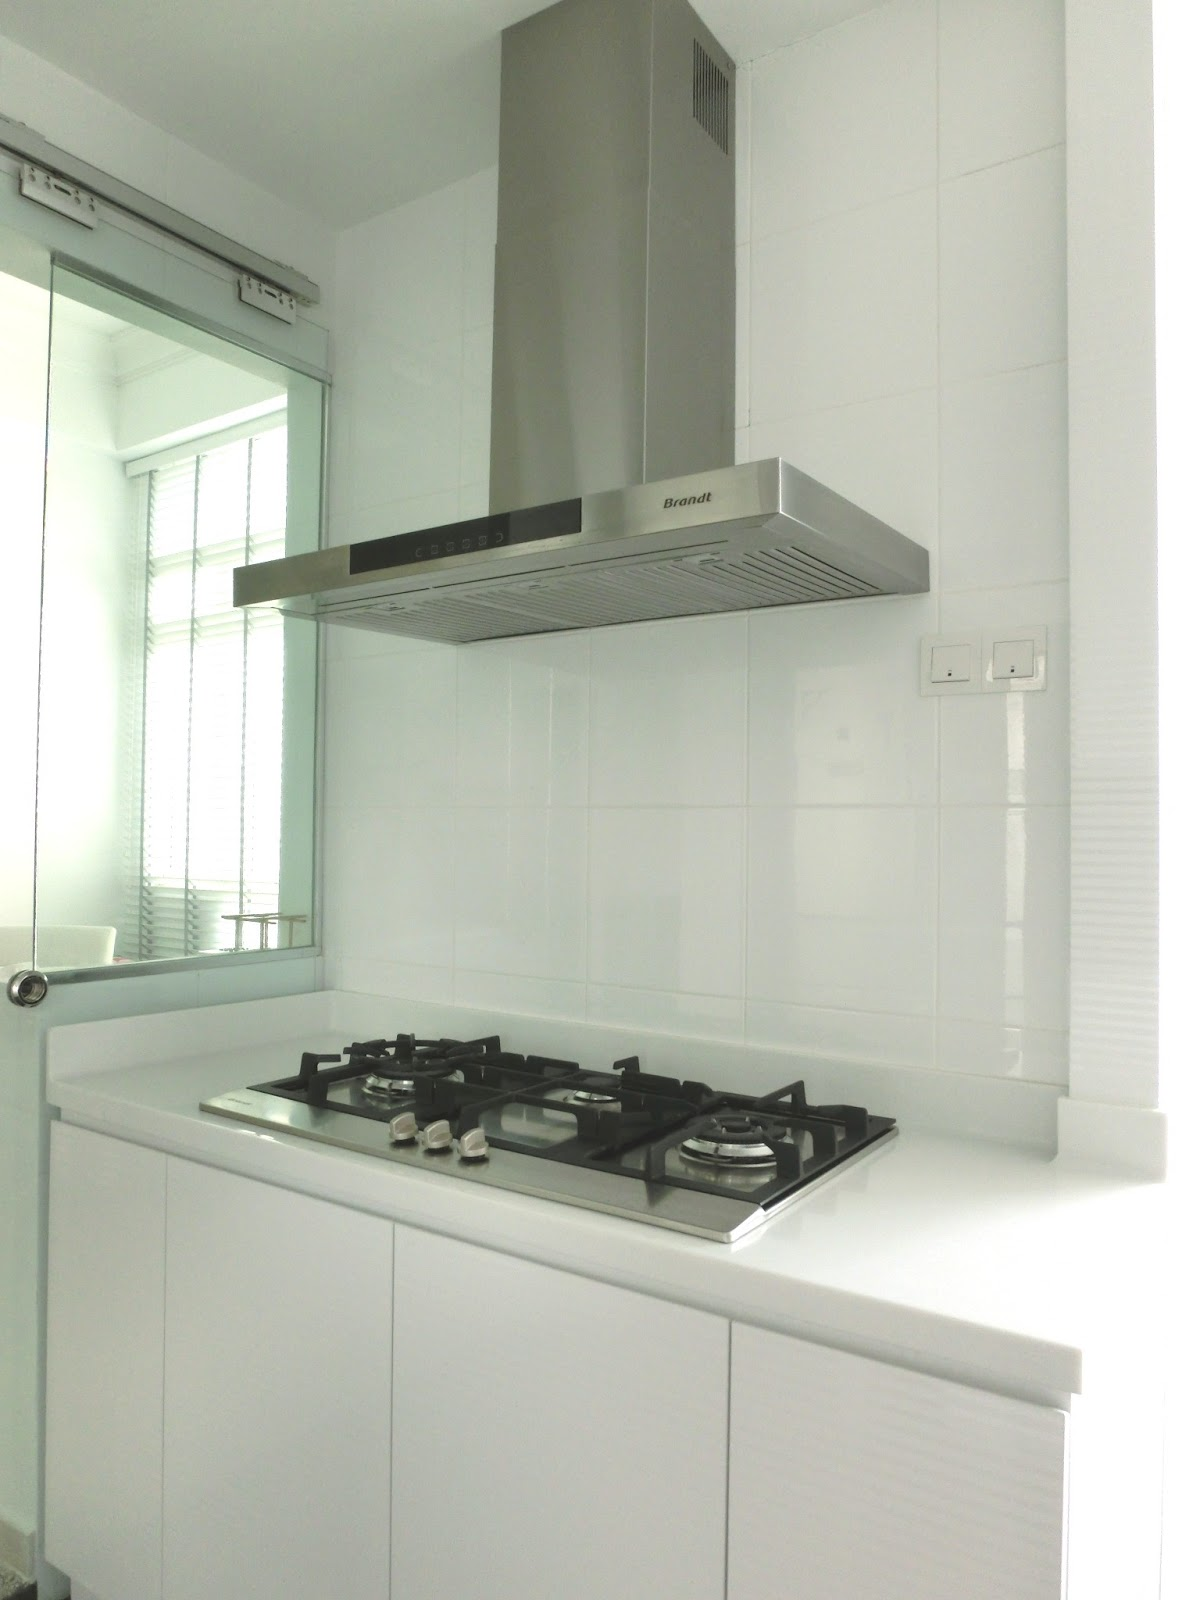 Kitchen Appliances Singapore White On White Minimalism Kitchen Appliances